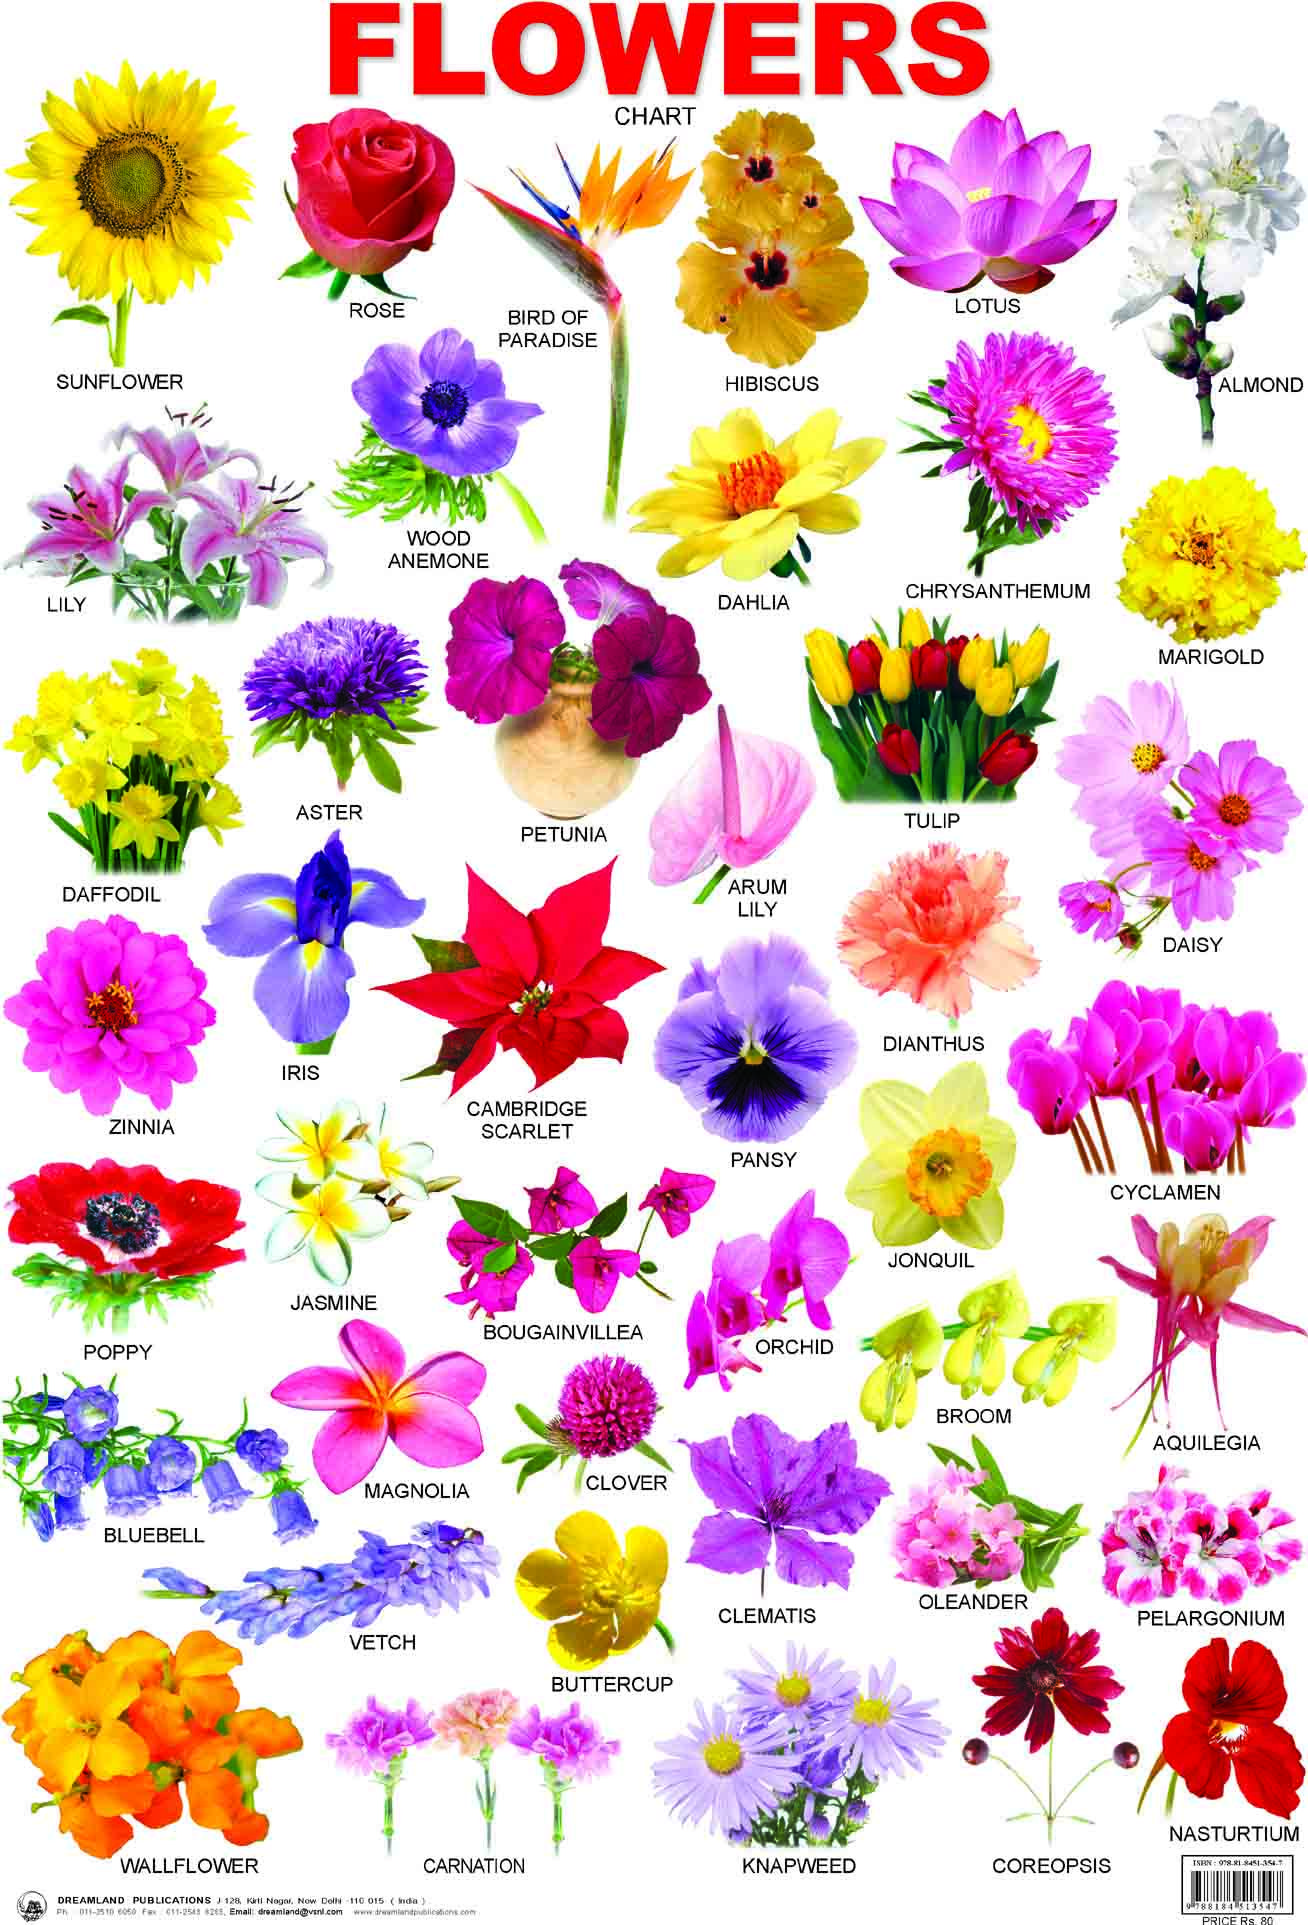 types of flowers with names and meanings. buy educational charts series: flowers at types of with names and meanings